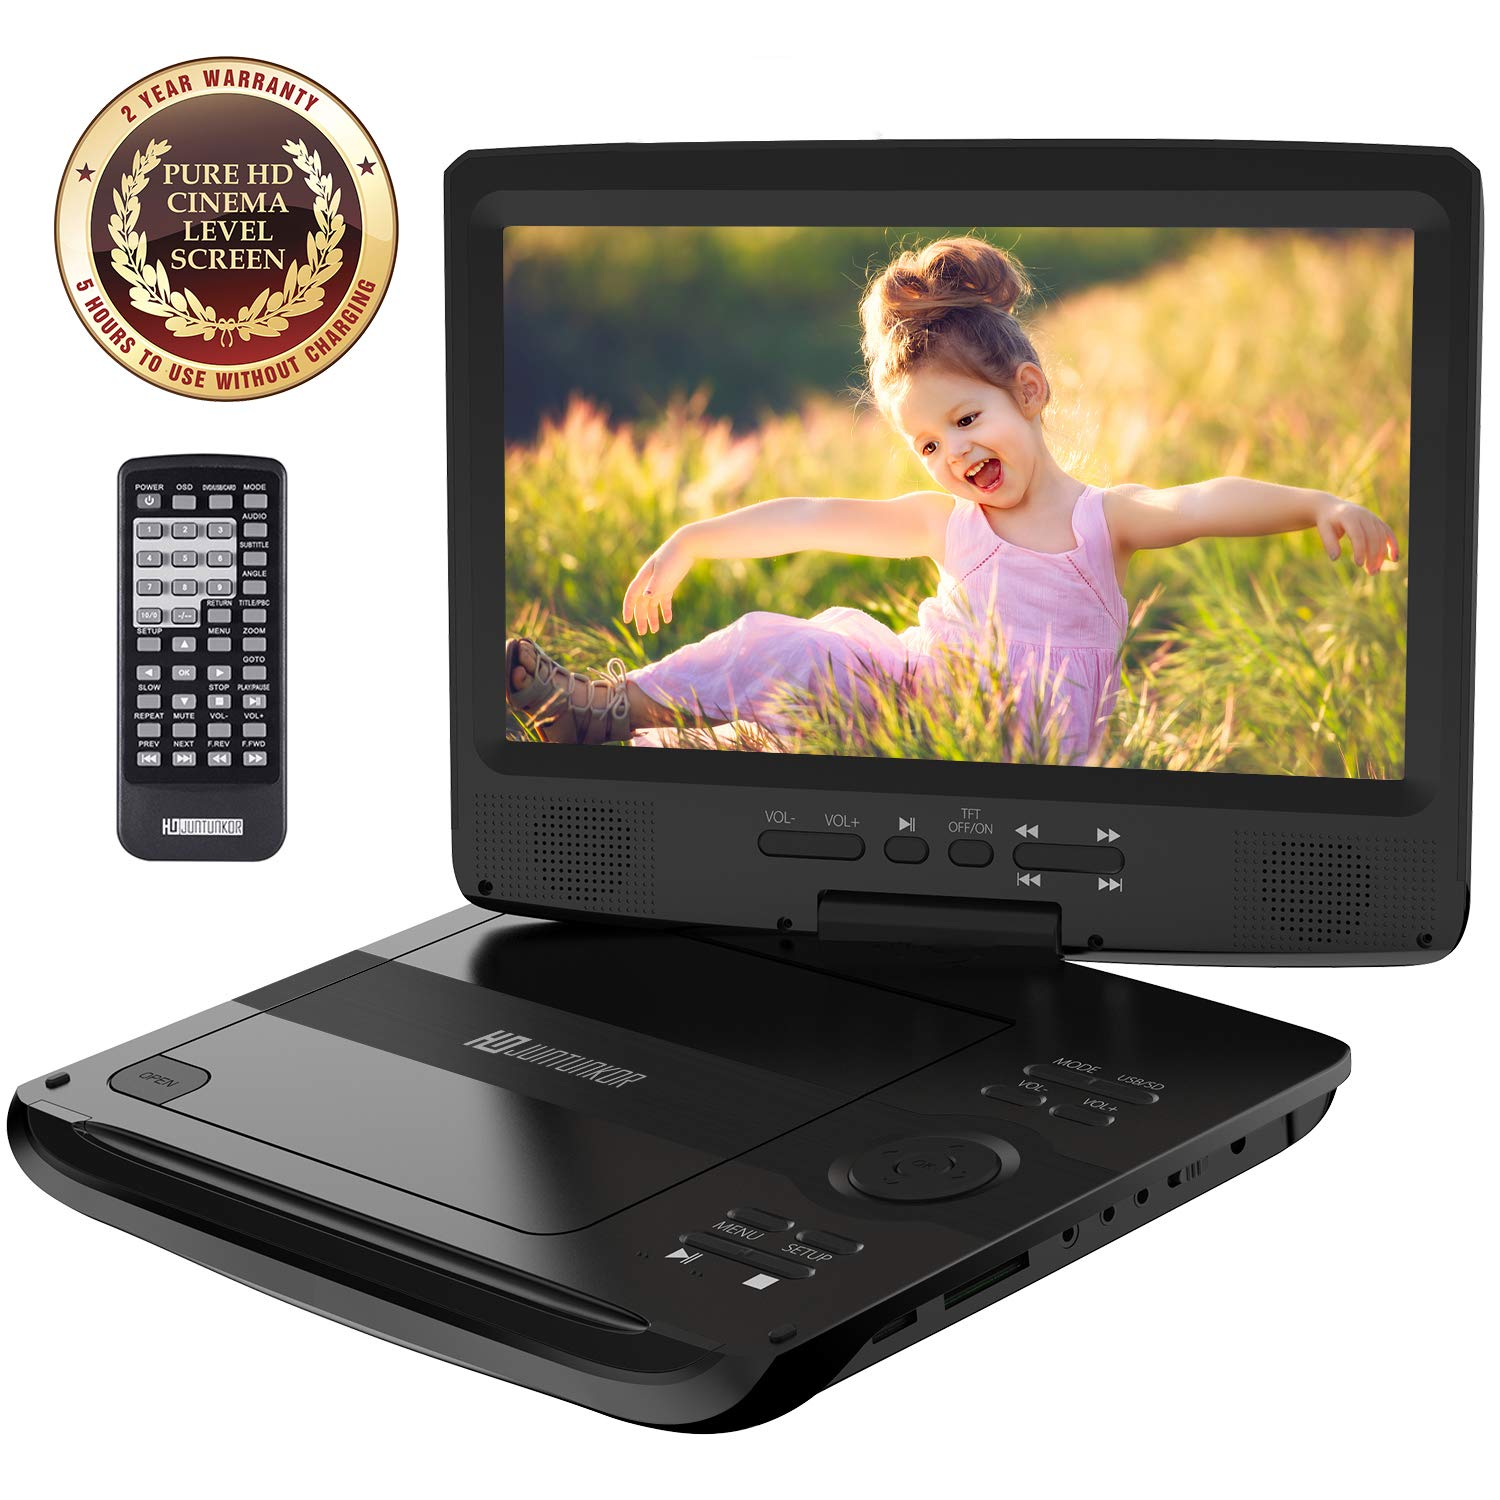 "HD JUNTUNKOR 12.5"" Portable DVD Player with 5 Hrs Rechargeable Battery, Unique Design for Dual Use Purpose, 10.1"" HD Swivel Screen, Car Headrest Case, Remote Control, Car Charger, USB/SD Card Reader"